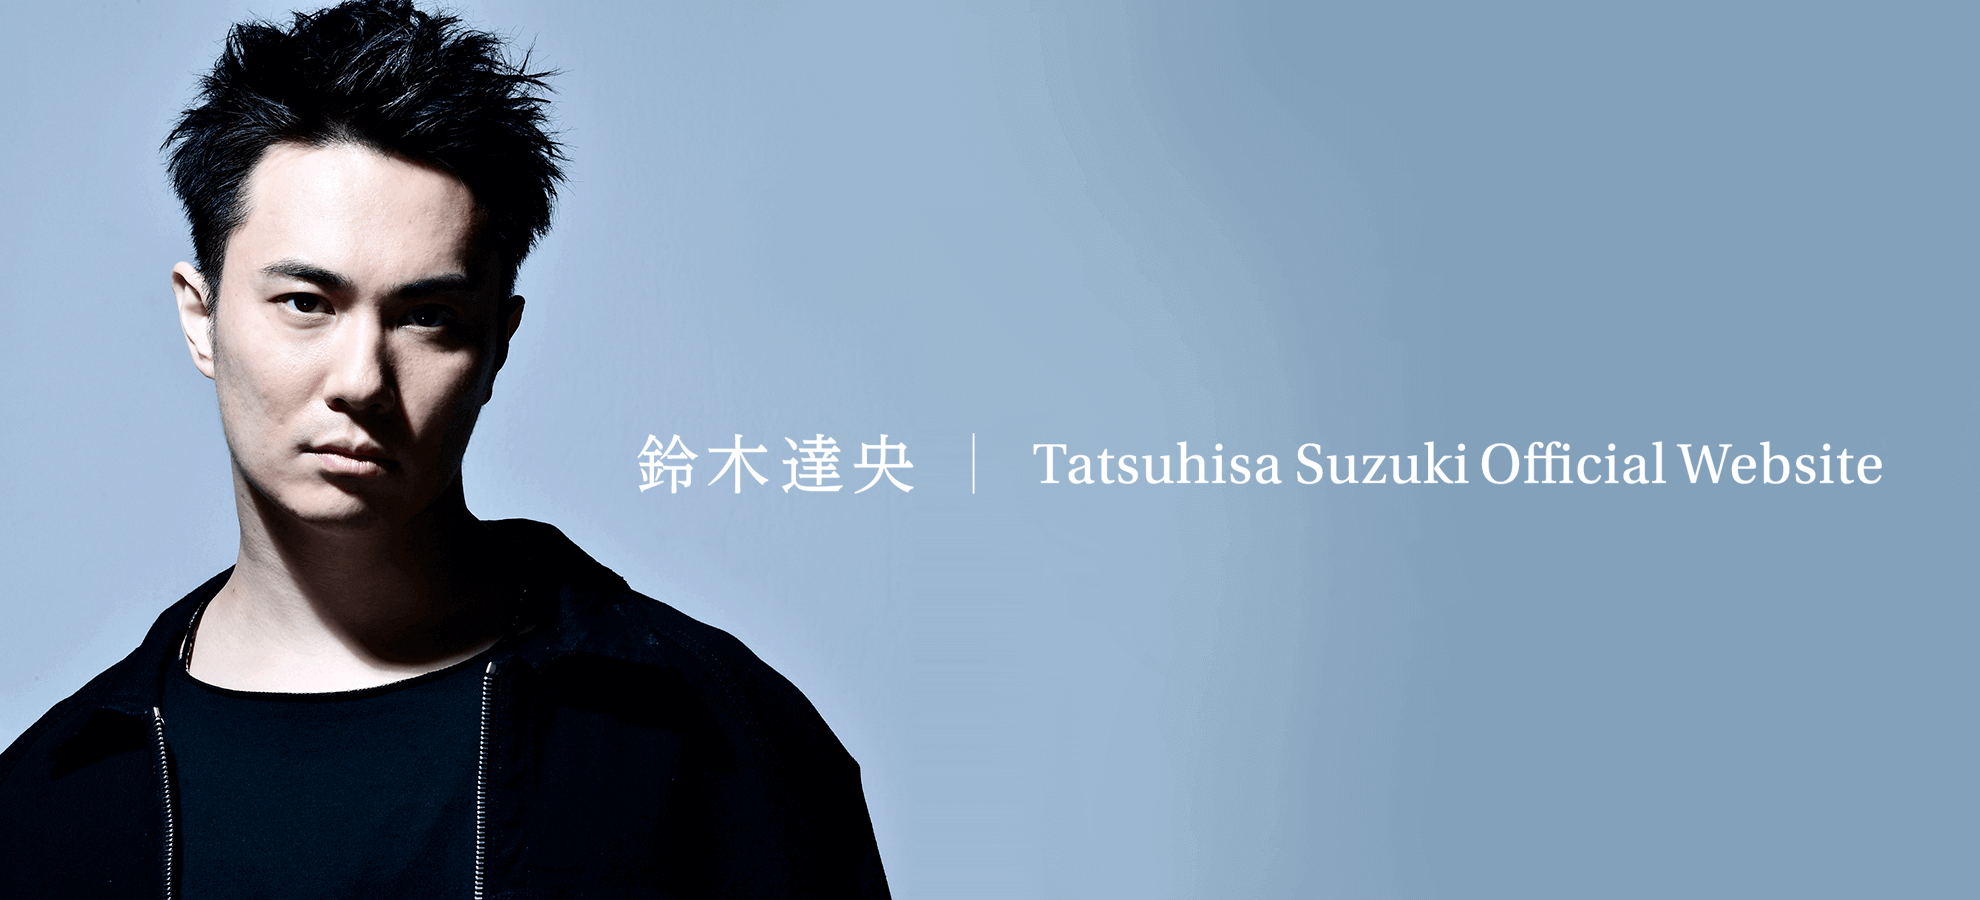 鈴木達央 Tatsuhisa Suzuki Official Website